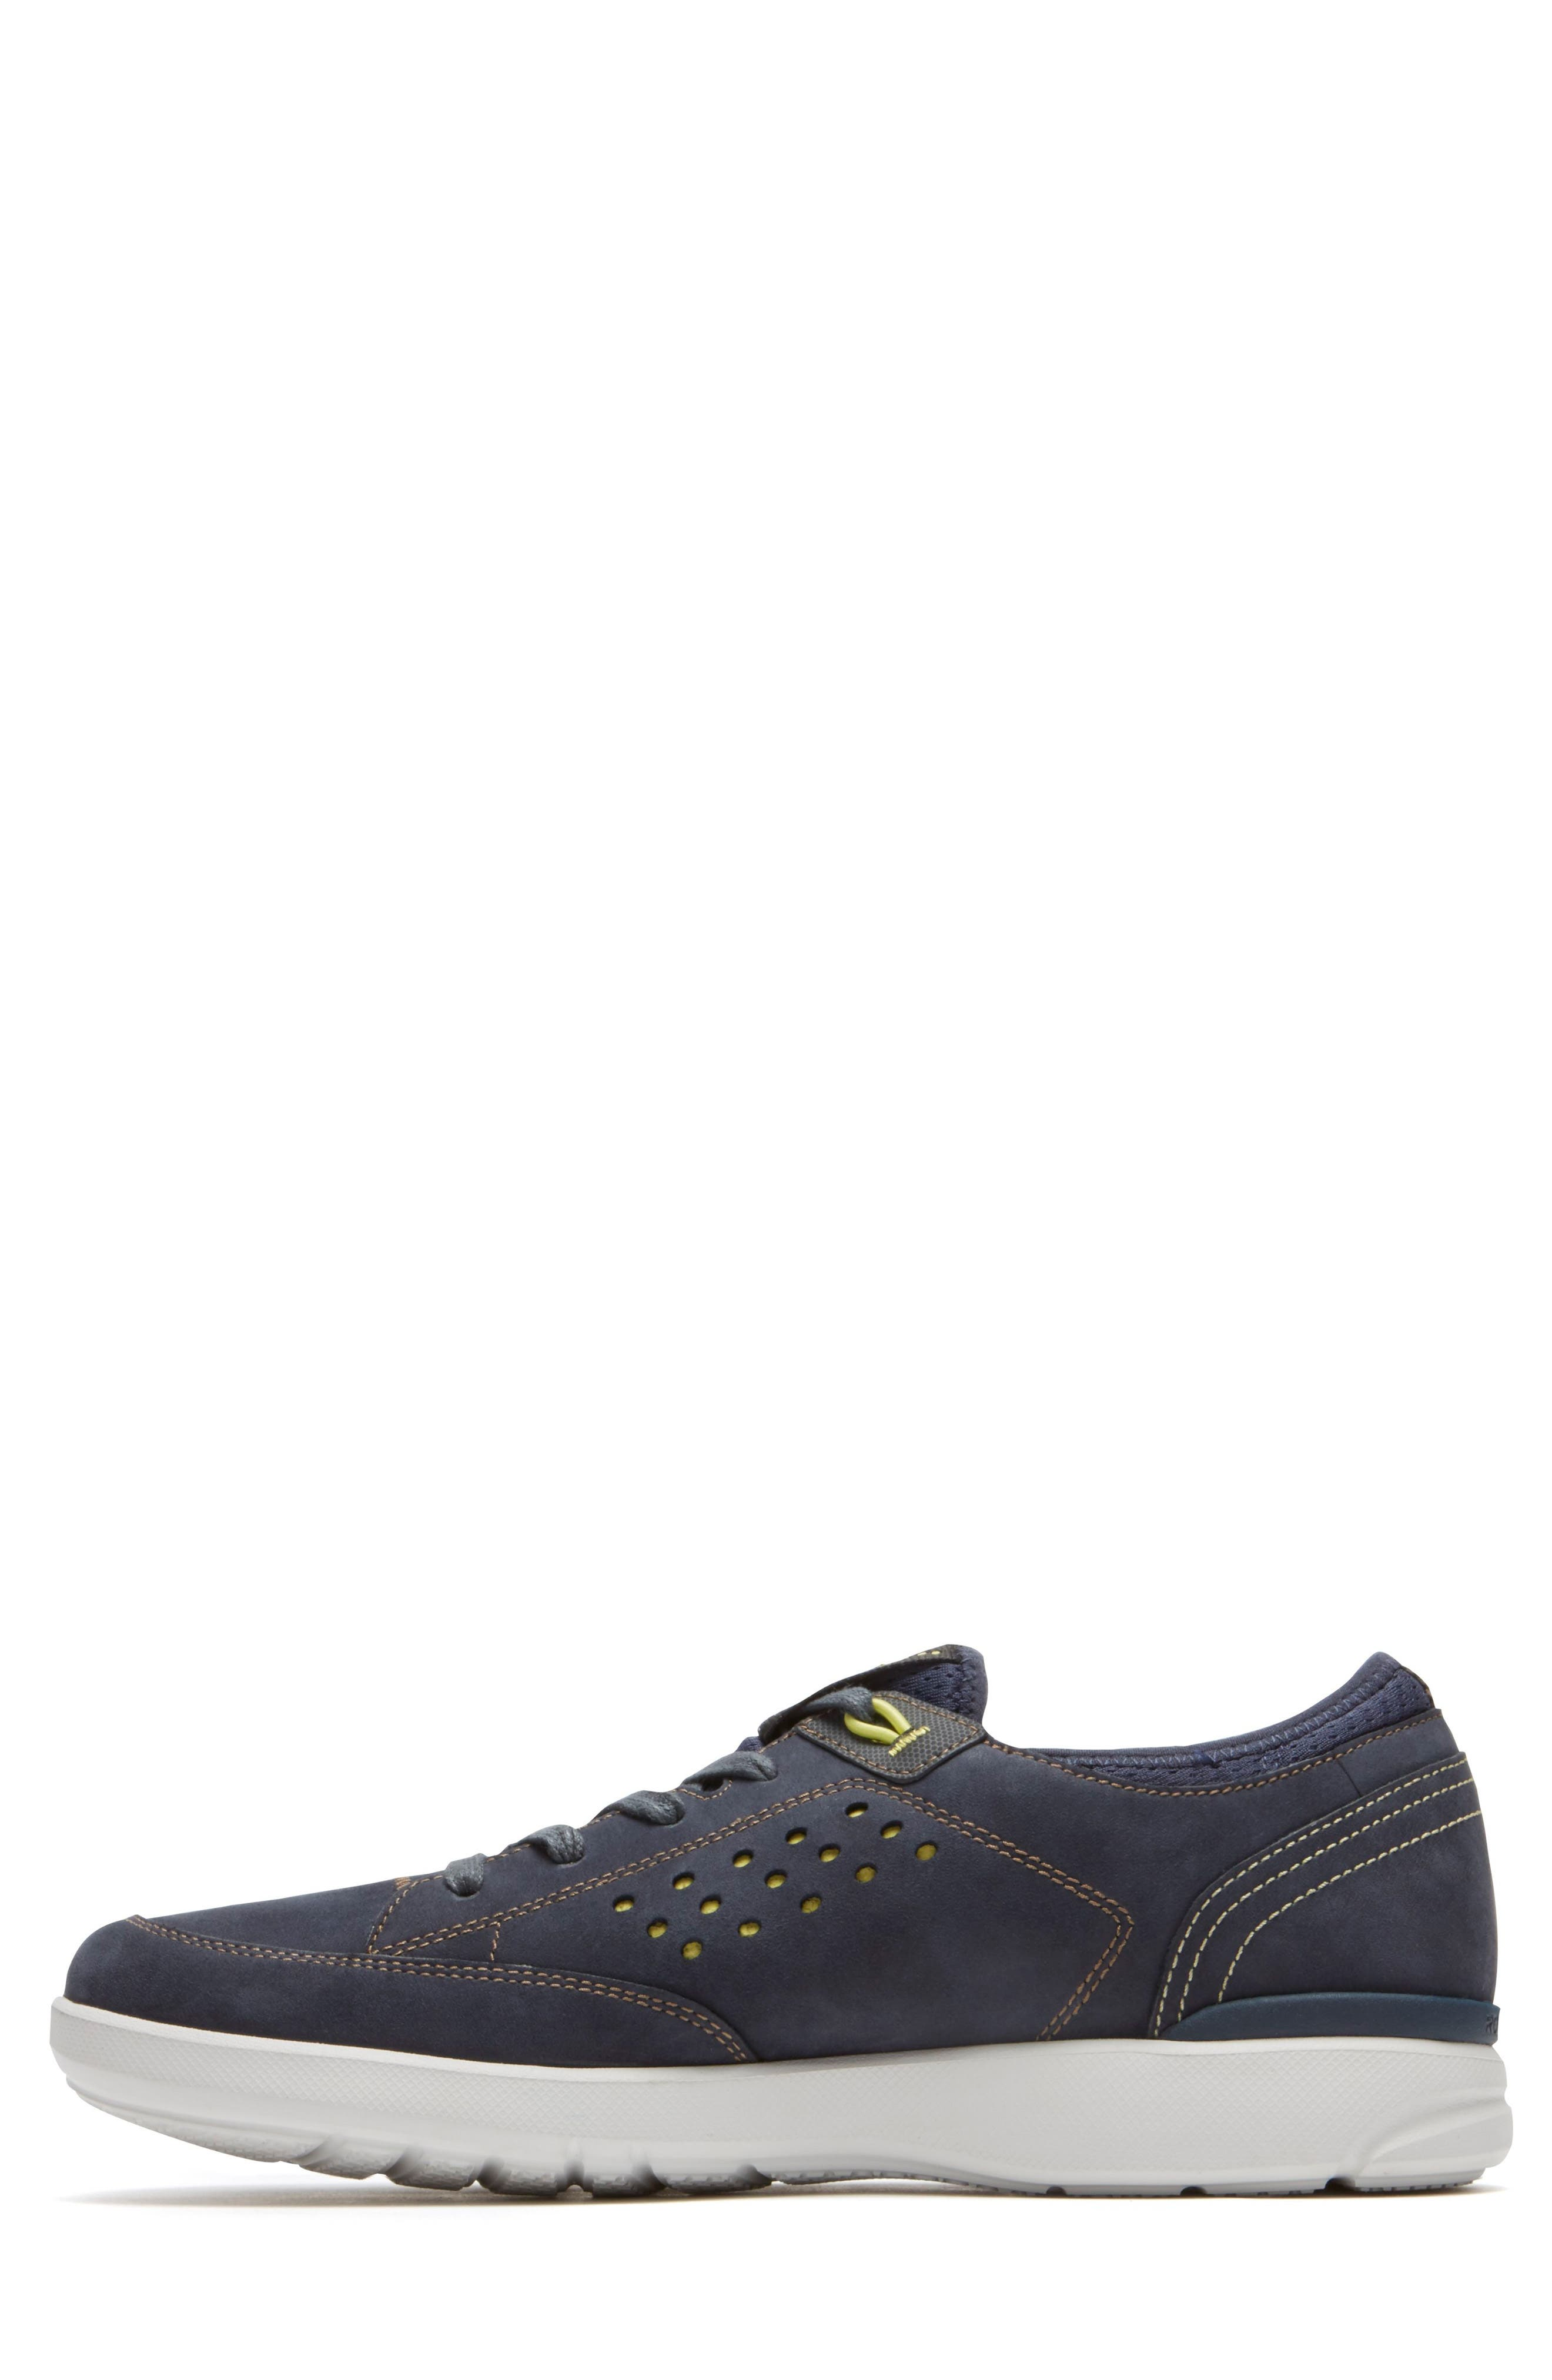 Truflex Sneaker,                             Alternate thumbnail 2, color,                             NEW DRESS BLUES NUBUCK